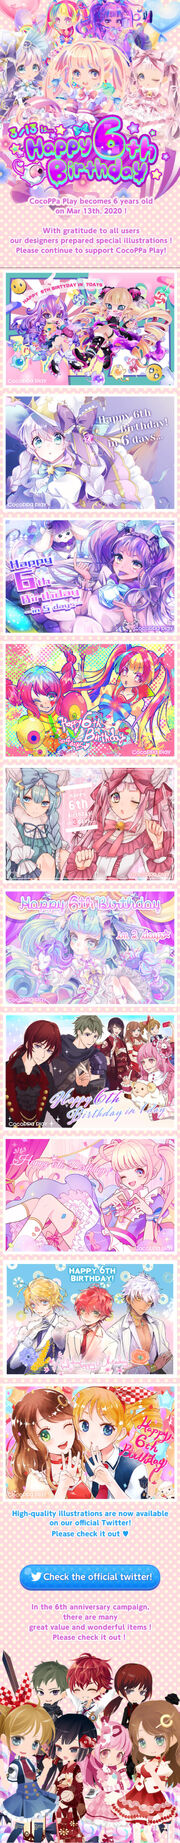 (Promotion) CocoPPa Play 6th Anniversary - March 13